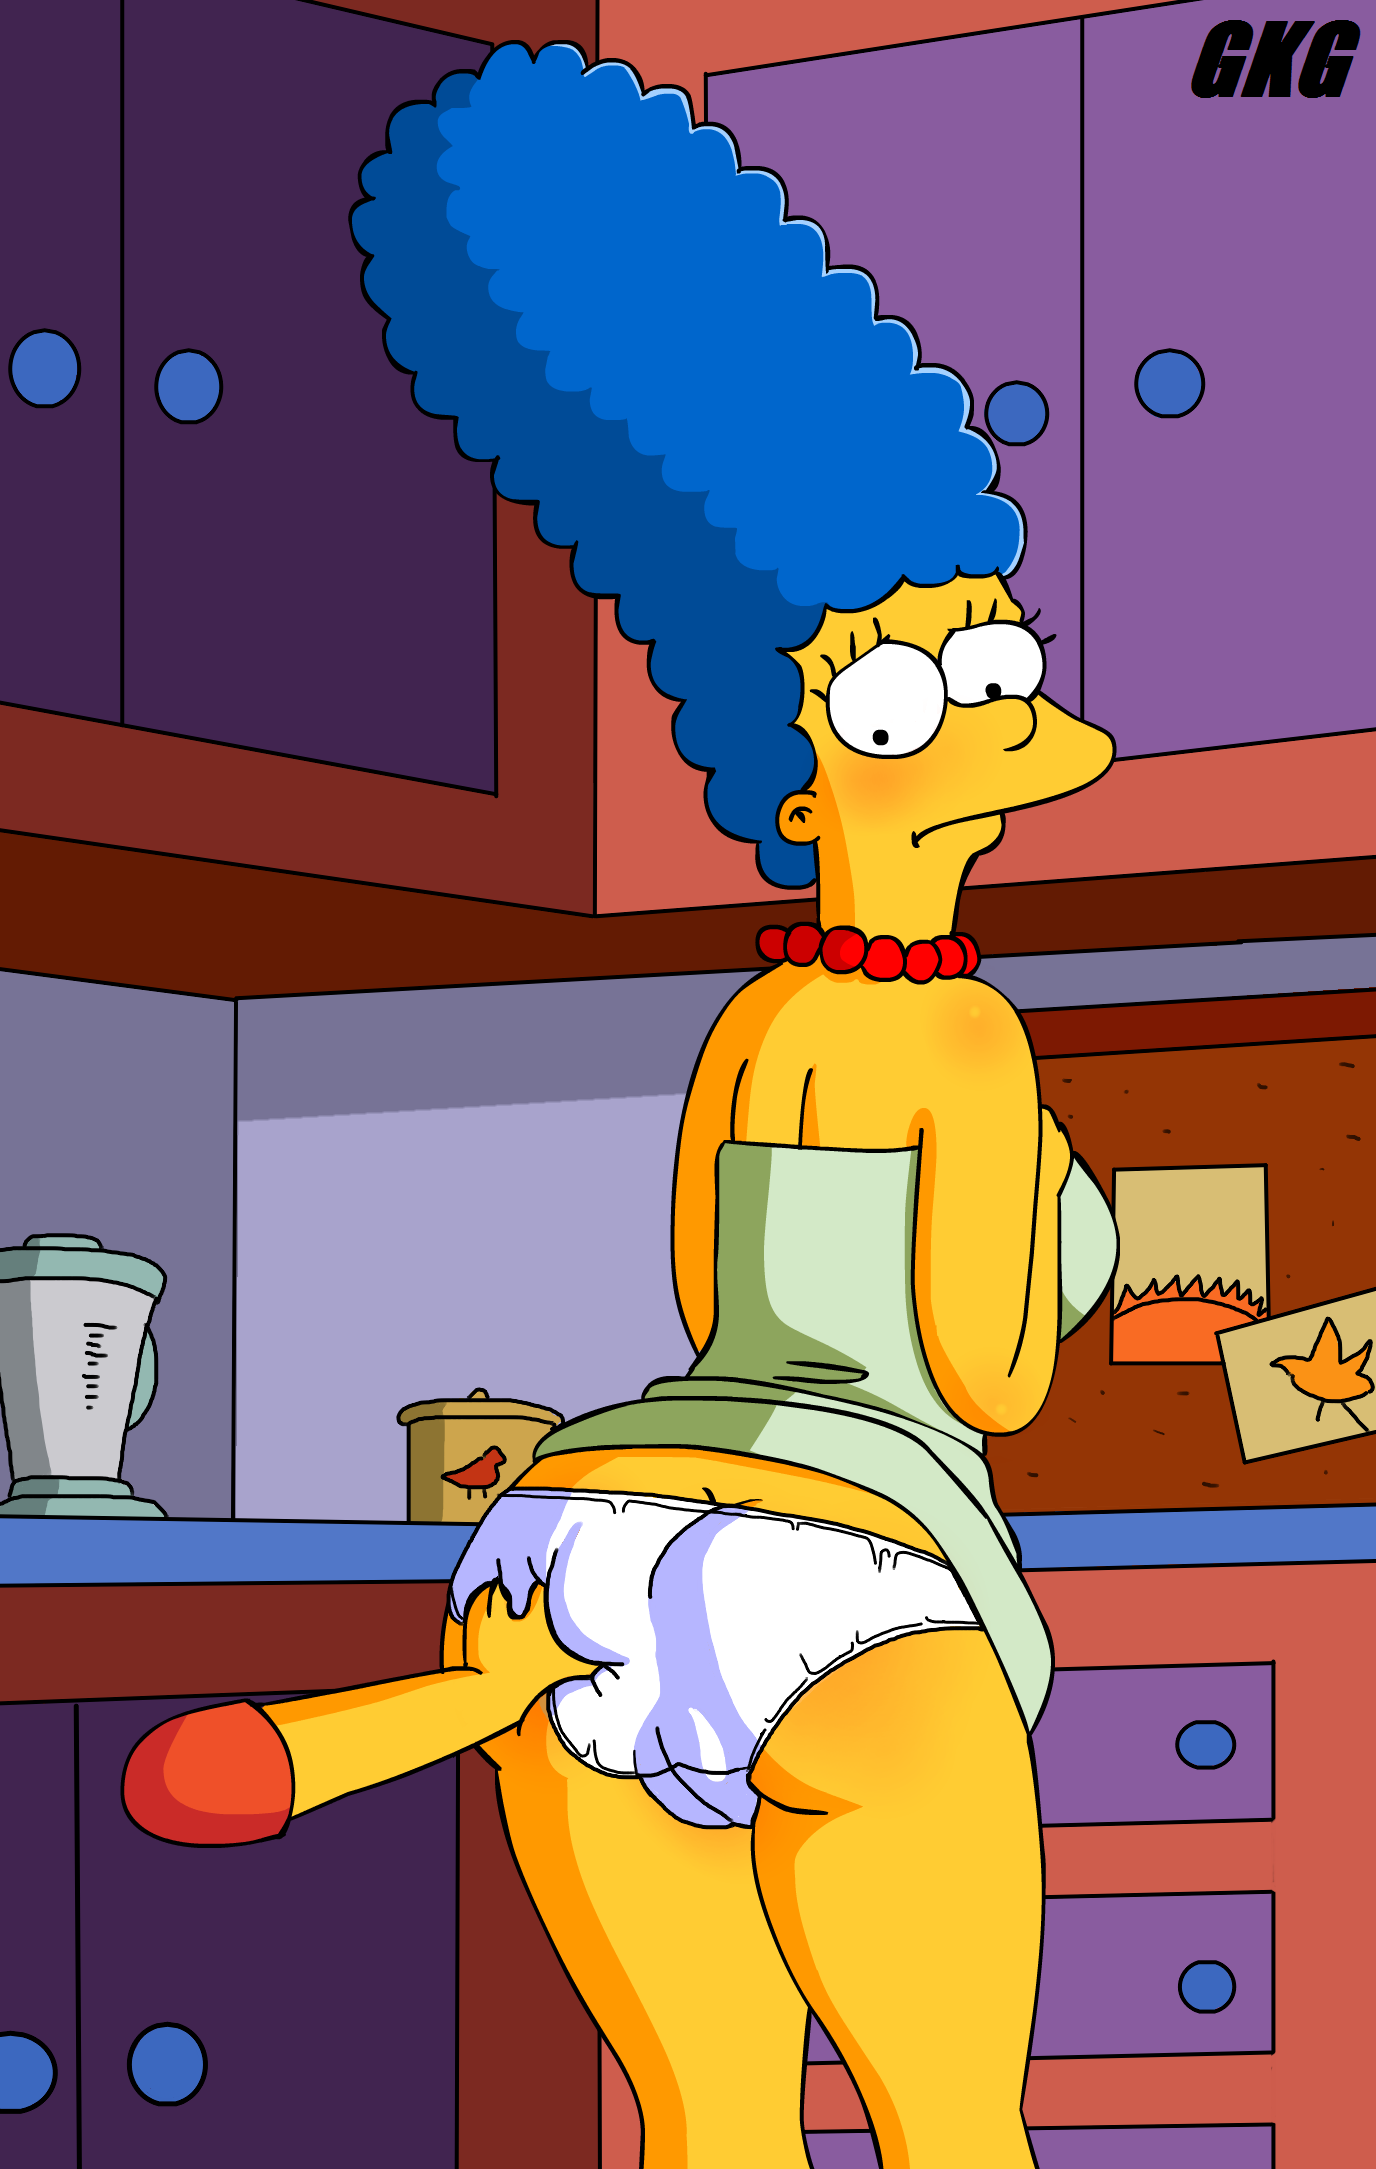 Nude Marge Simpson Show Her Pussy